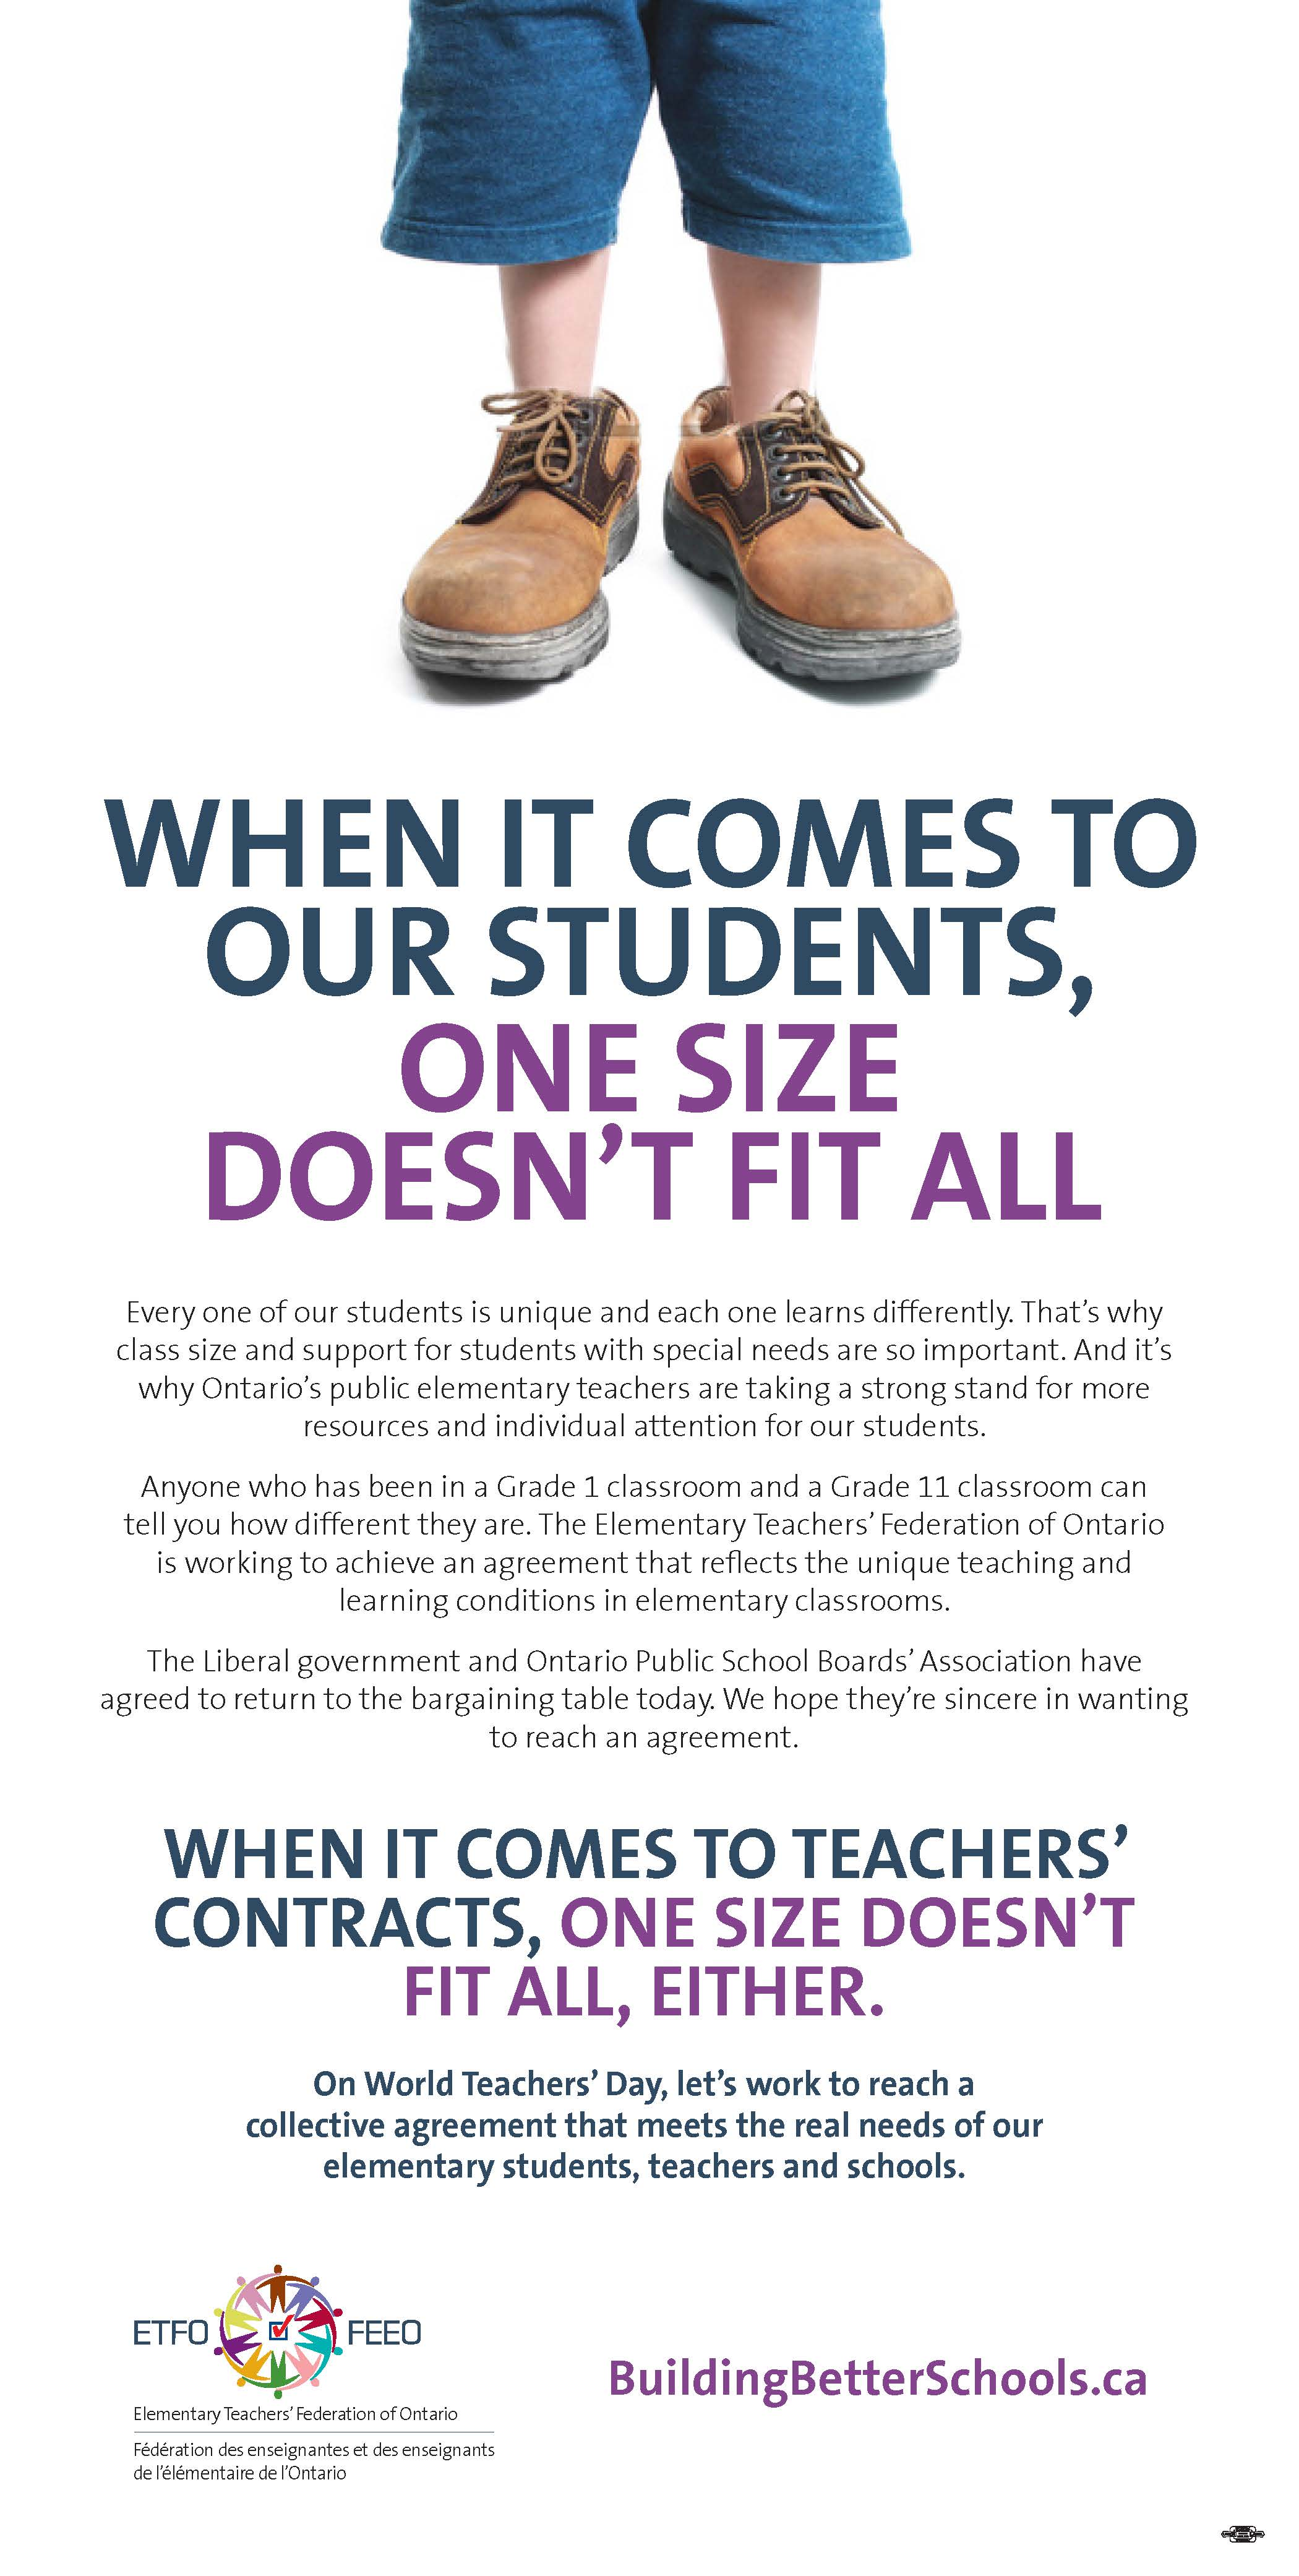 ETFO - Toronto Star Ad - One Size Doesn't Fit